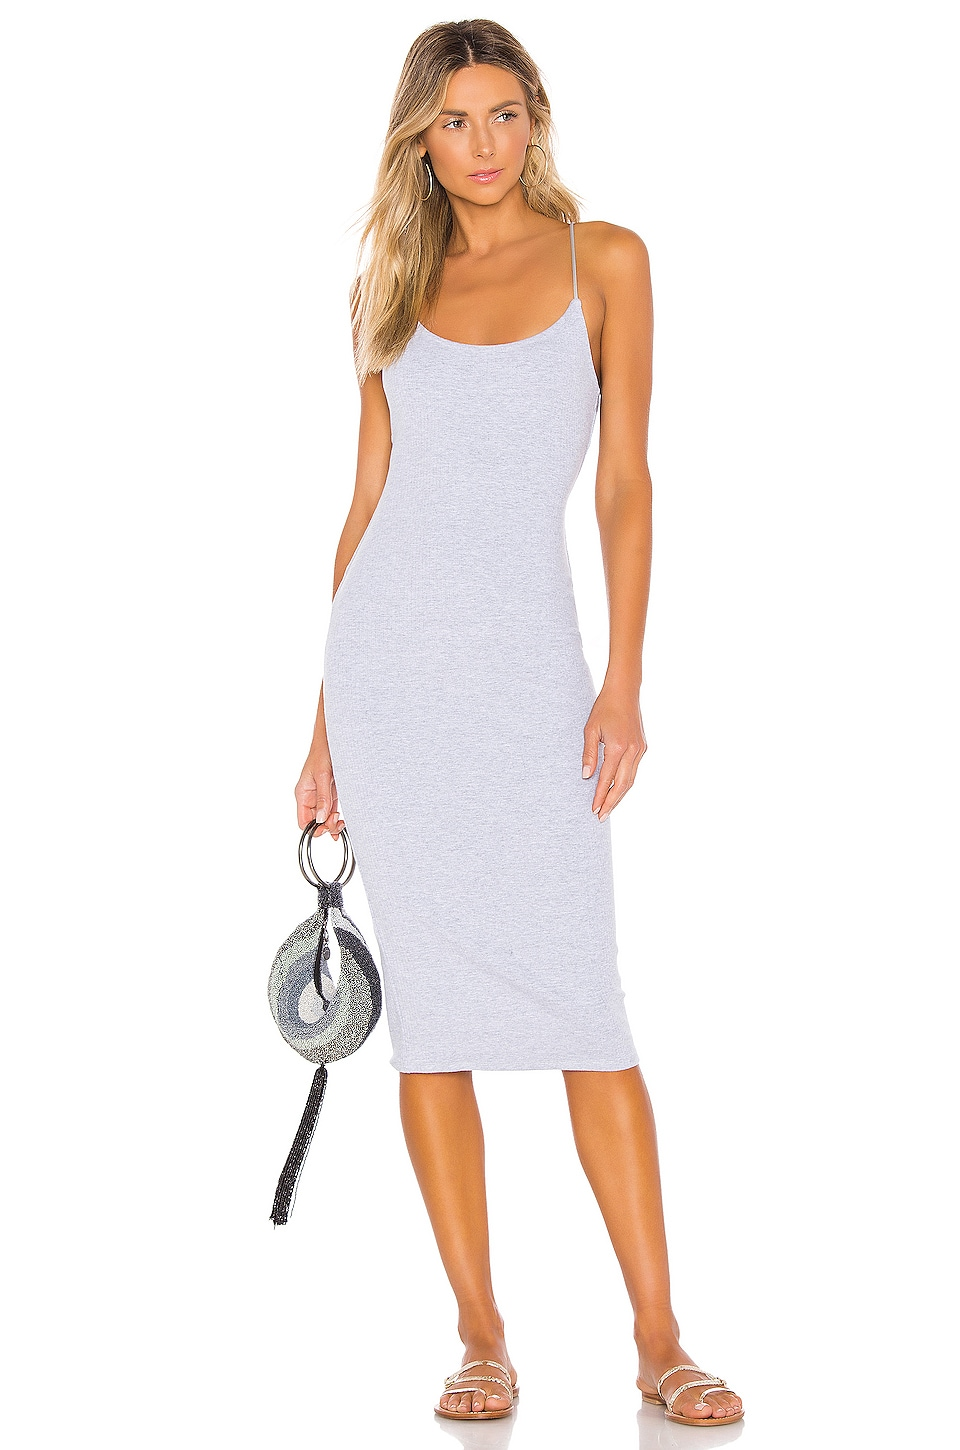 Privacy Please Brooklyn Midi Dress in Heather Grey